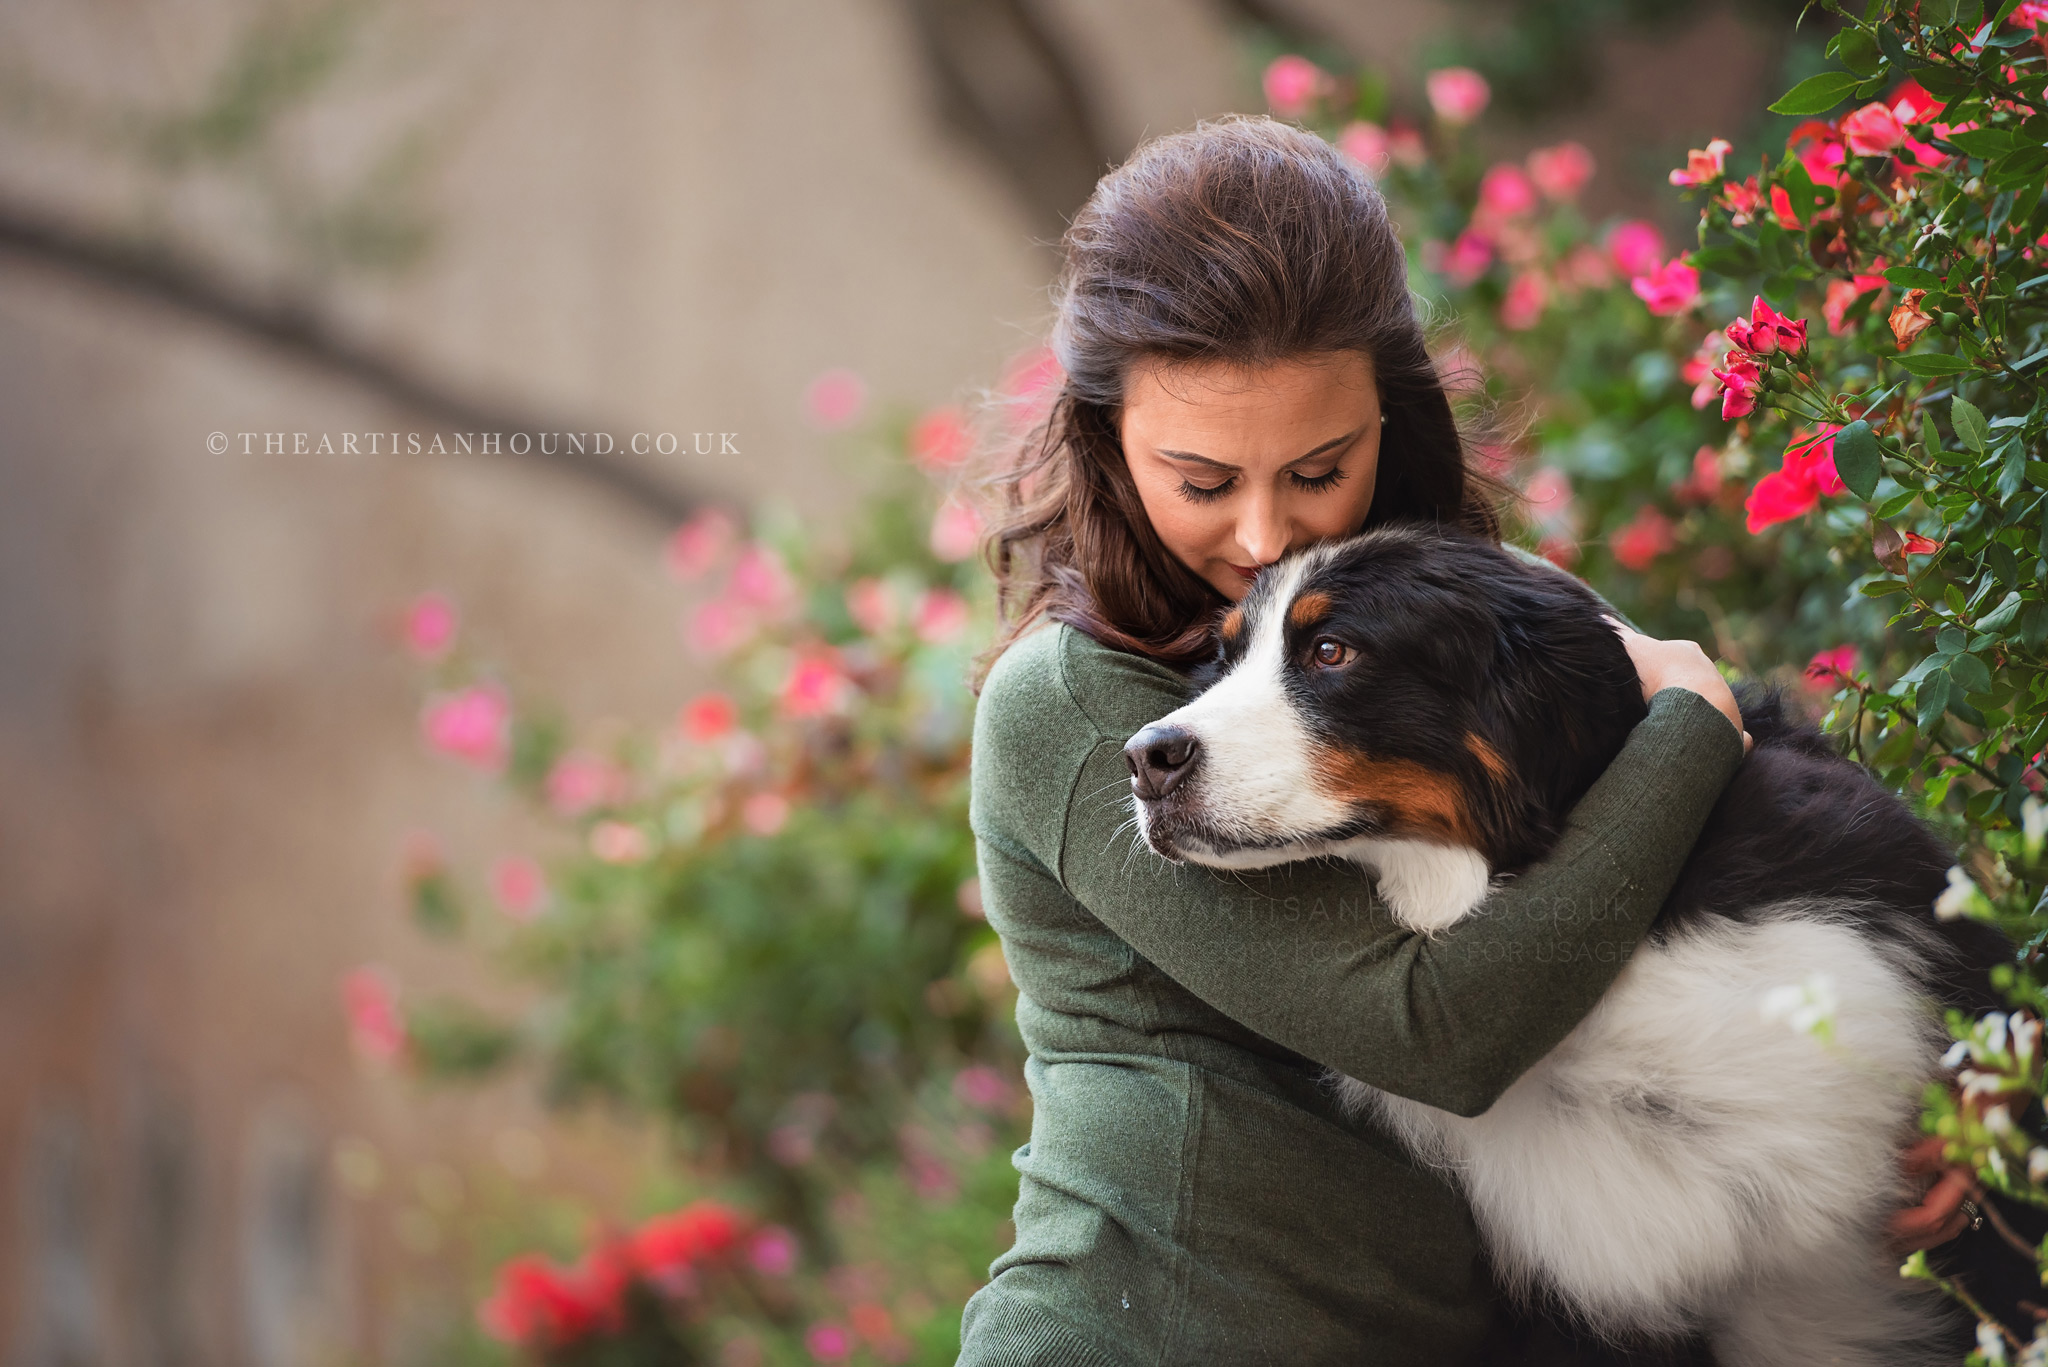 Owner hugging dog in flowers